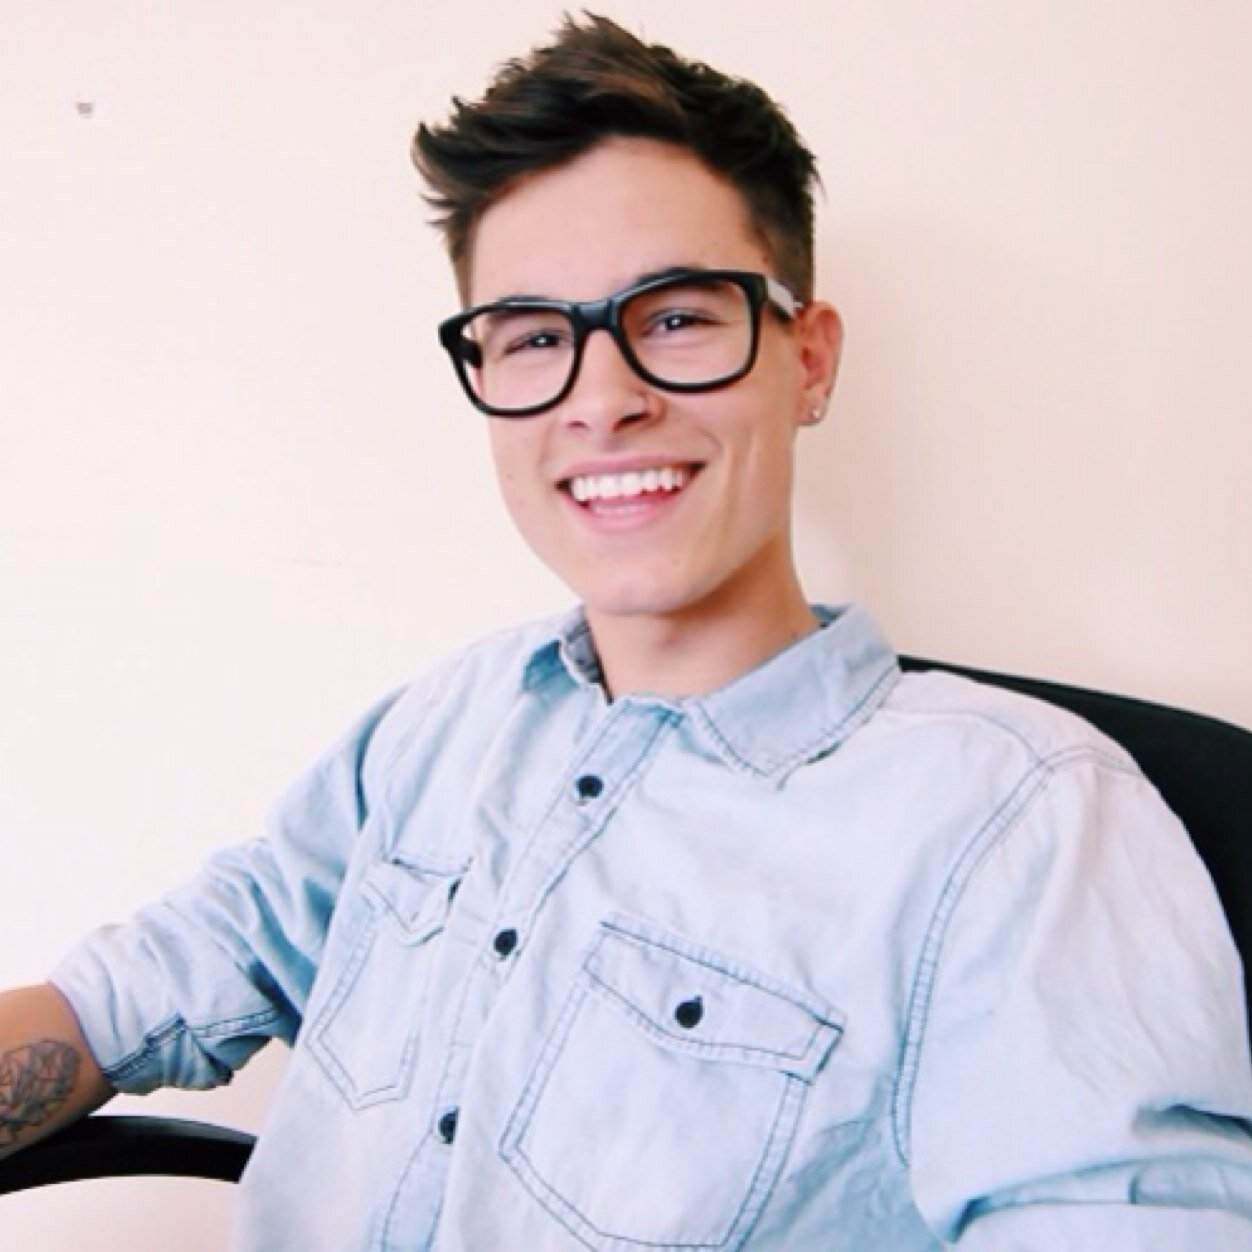 Web Video Star Kian Lawley - age: 25